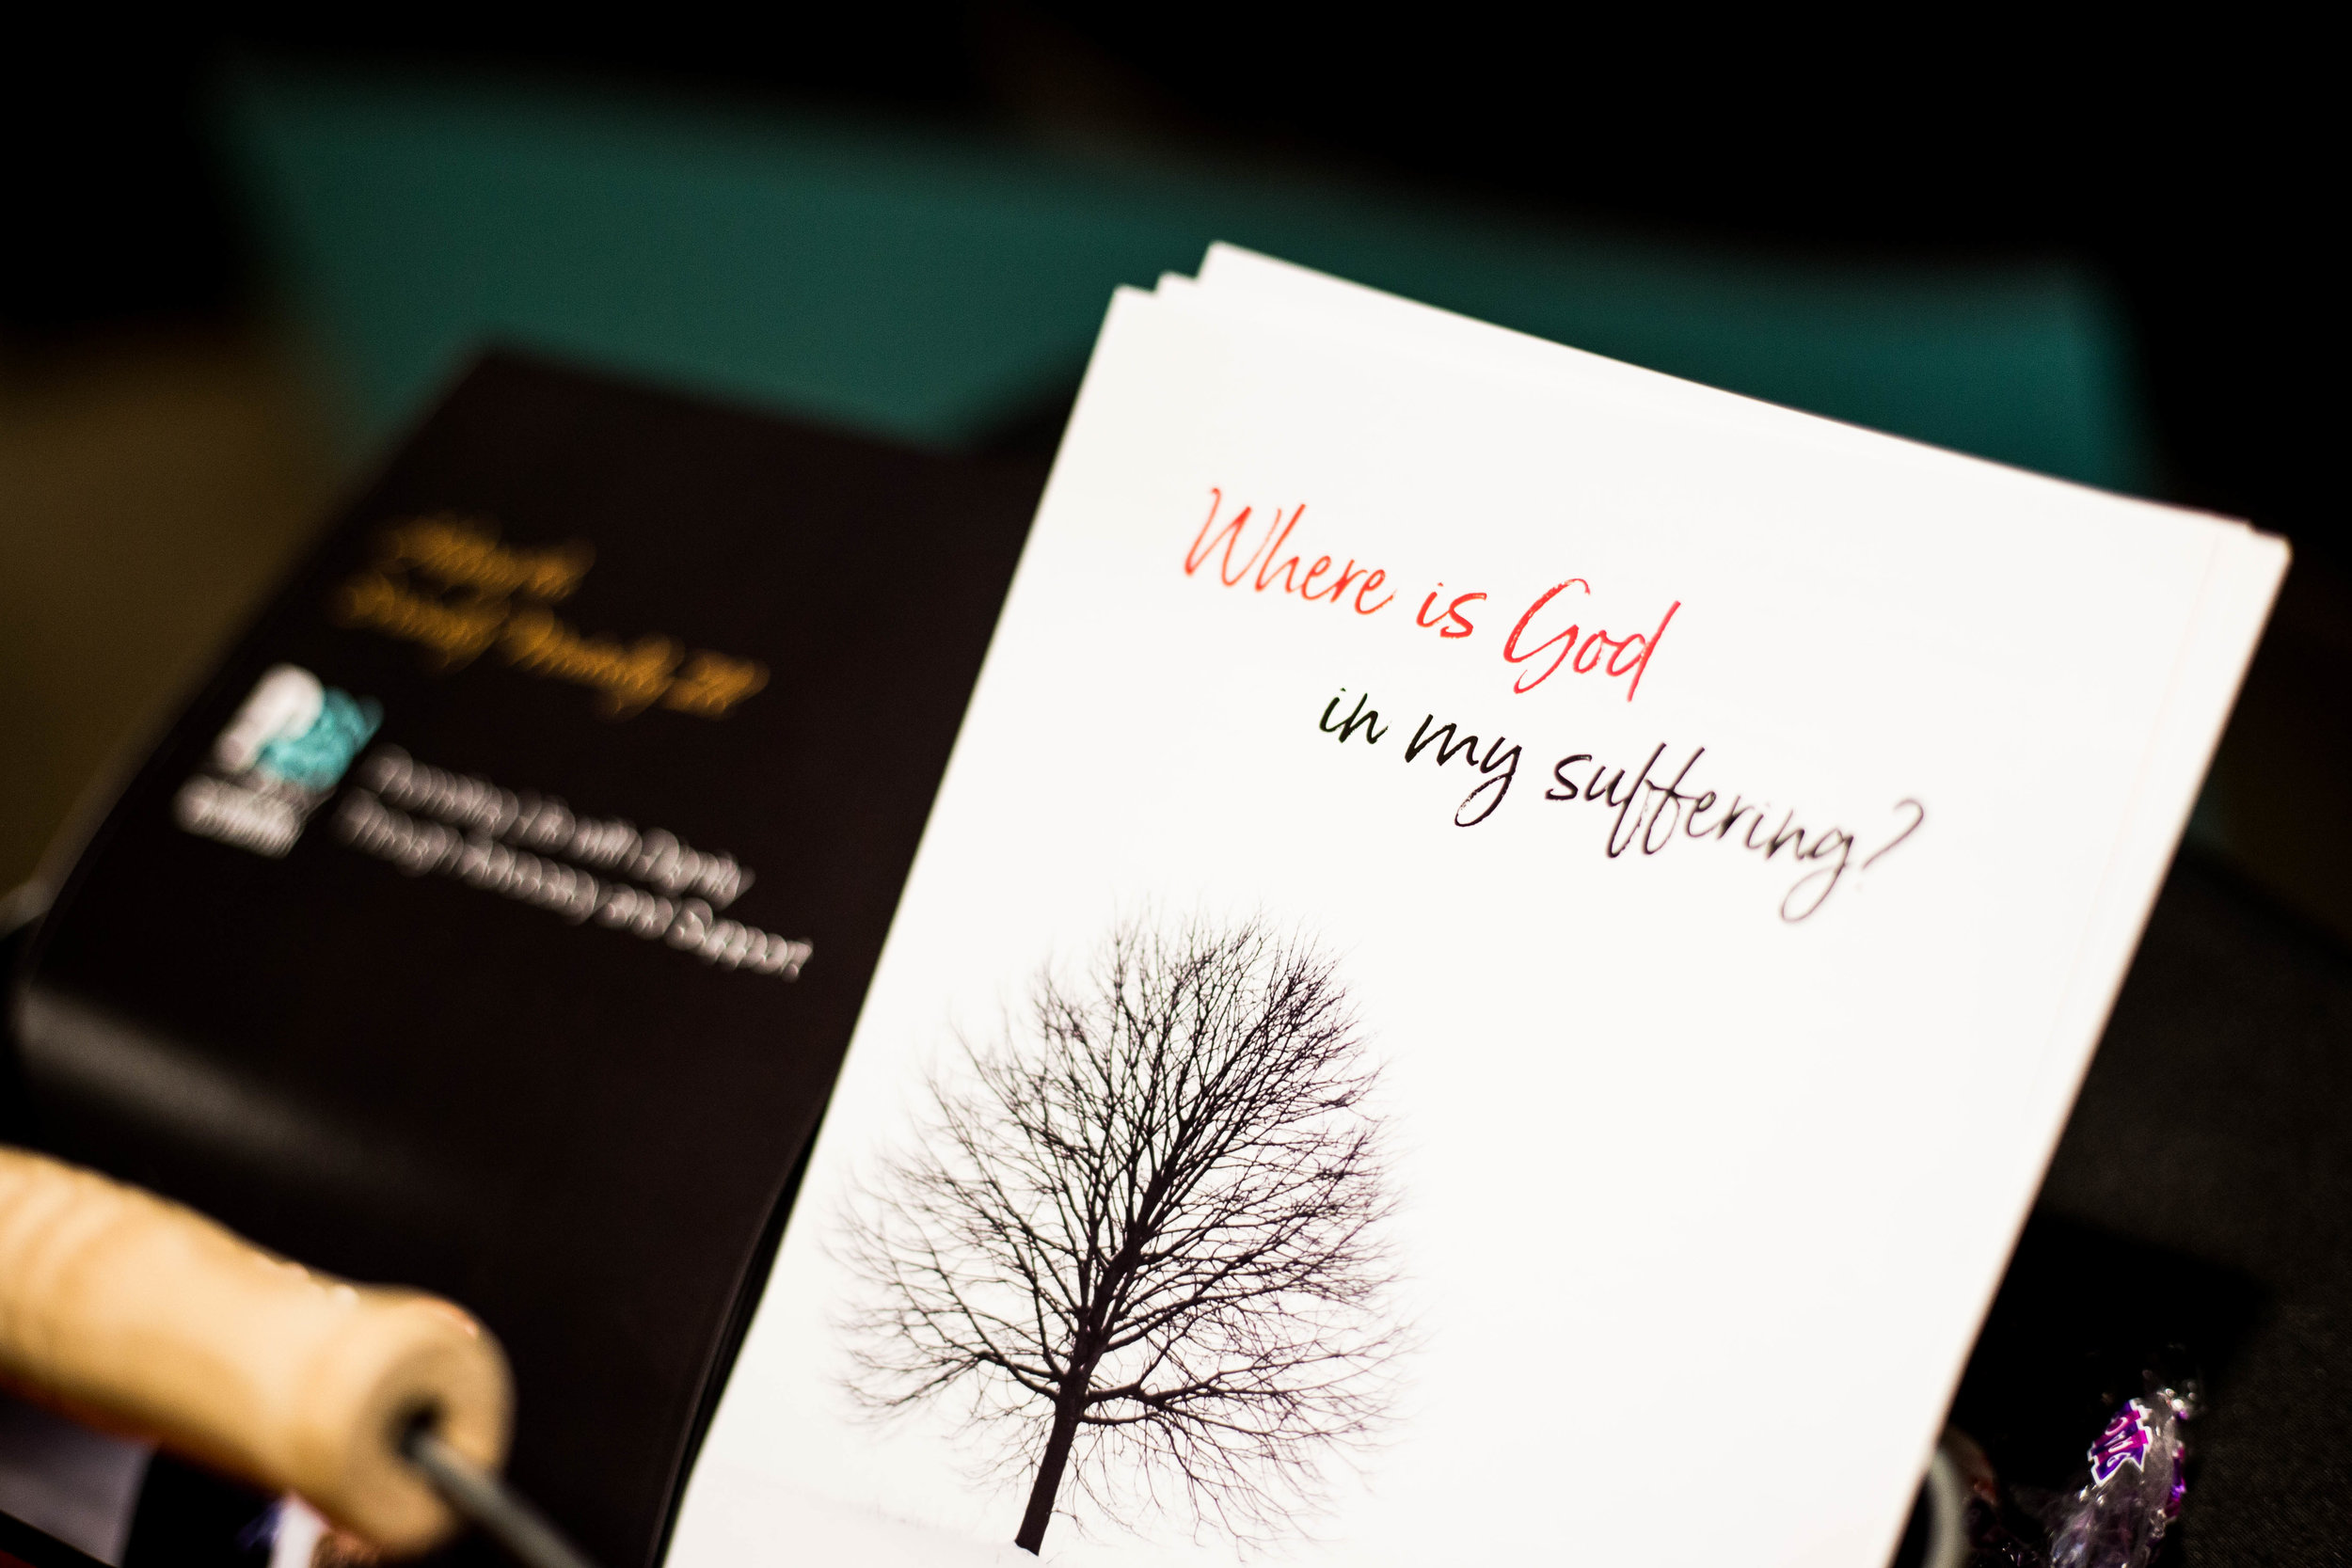 Mental Illness & Addictions, What Does the Gospel Have to Do With It?